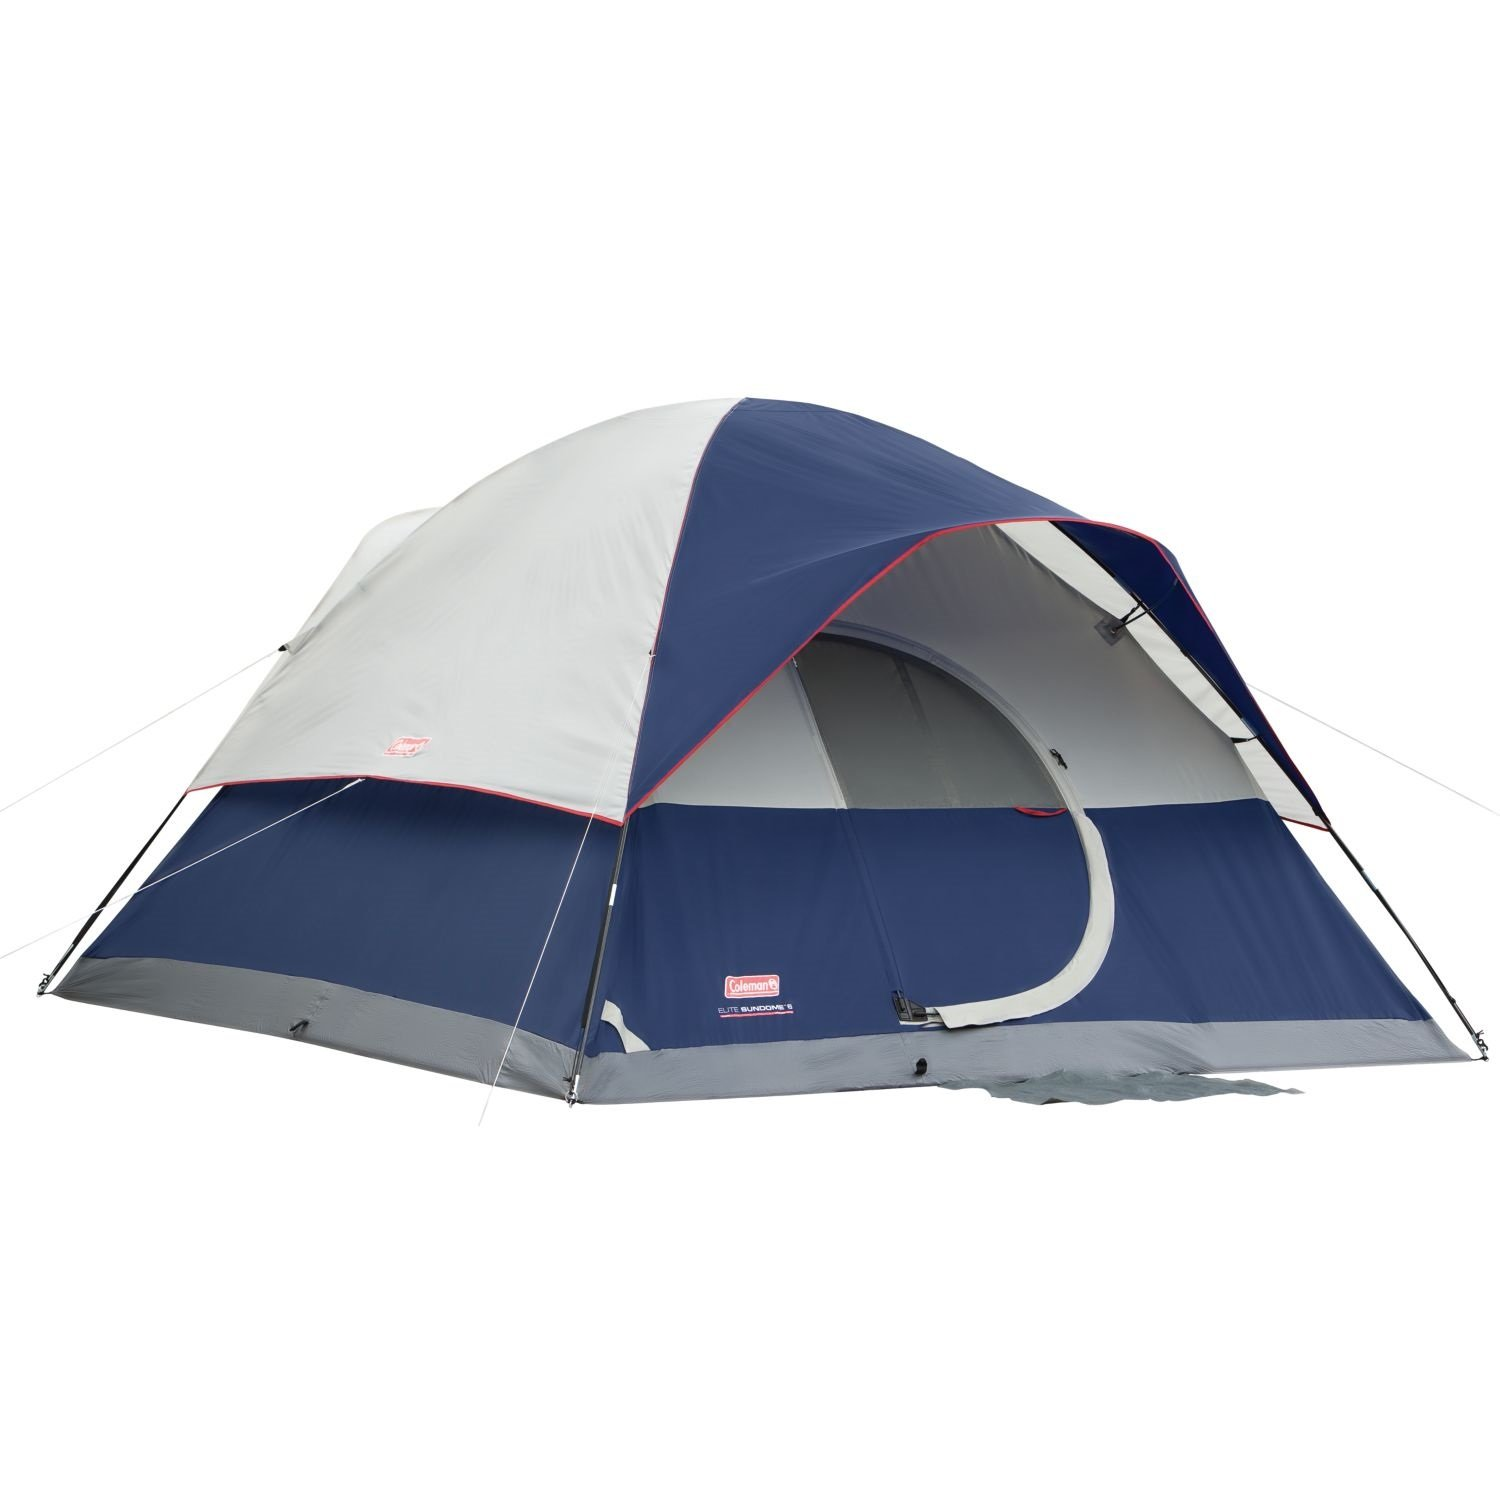 Amazon.com  Coleman Elite Sundome 6 Person Tent with LED Light System  Family Tents  Sports u0026 Outdoors  sc 1 st  Amazon.com & Amazon.com : Coleman Elite Sundome 6 Person Tent with LED Light ...